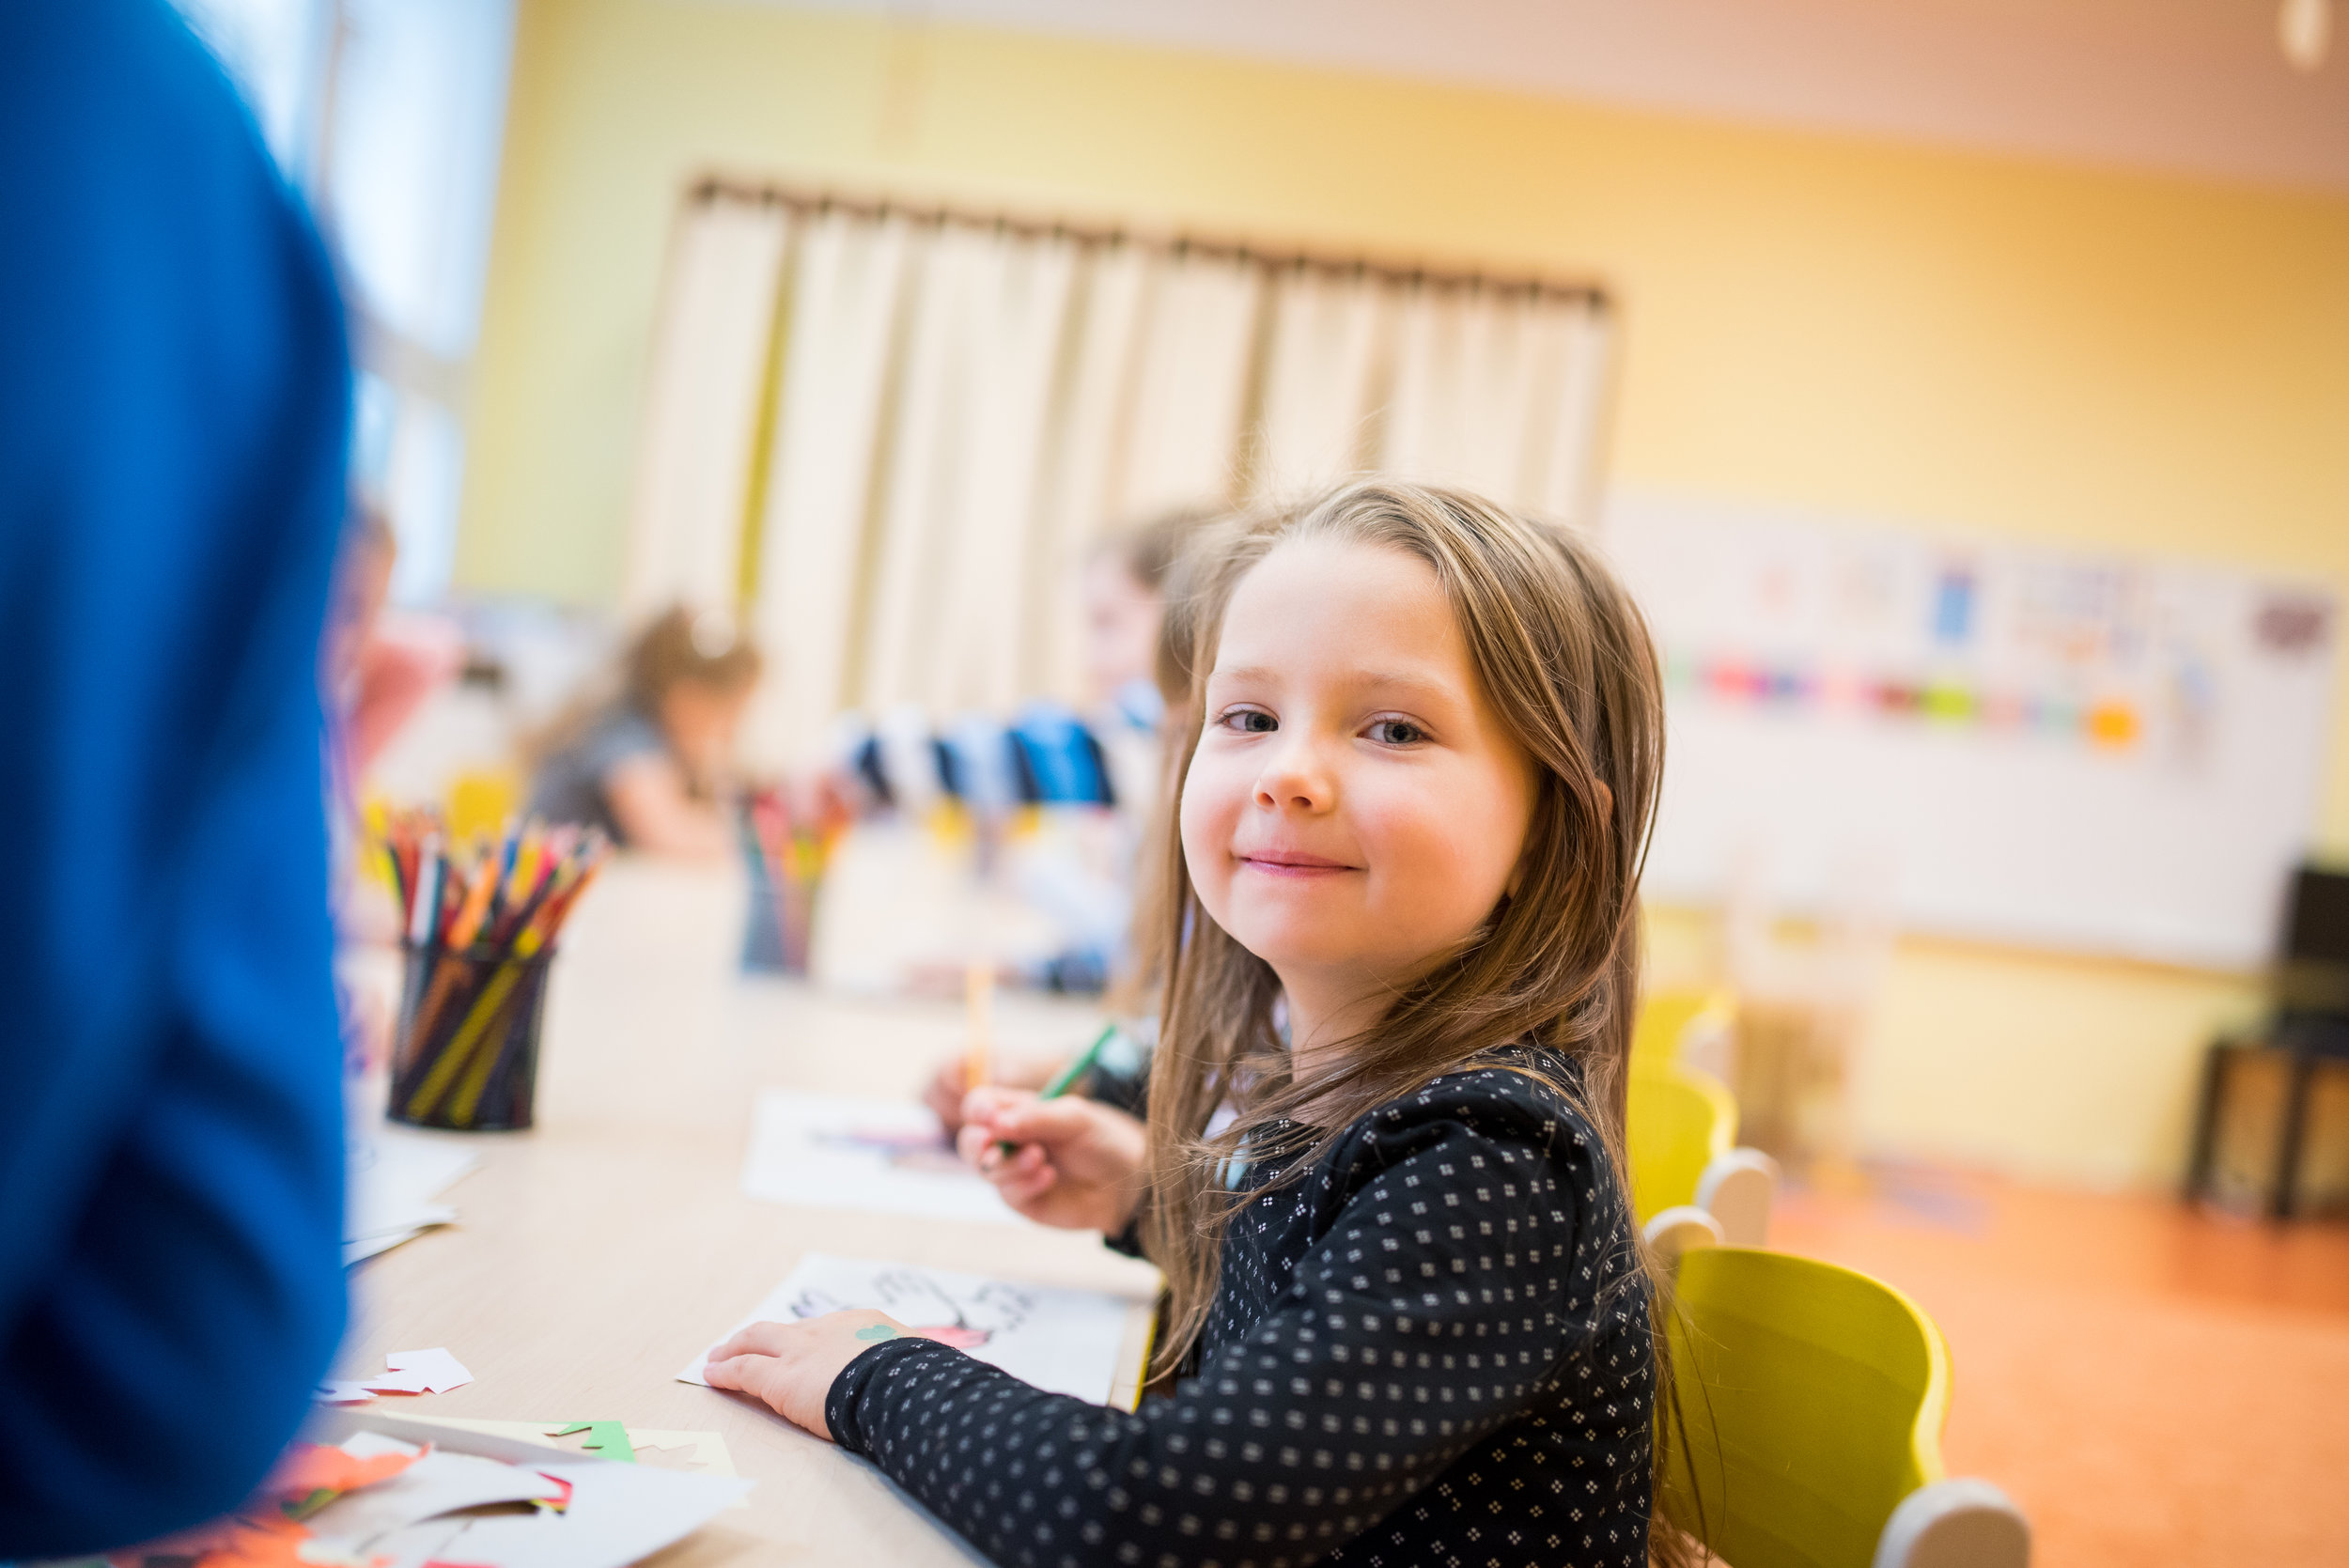 Development of mathematical, - language learning and science: through use of special teaching aids and other activities in our kindergarten classes, we can discover and develop the individual talents of our children in various areas.